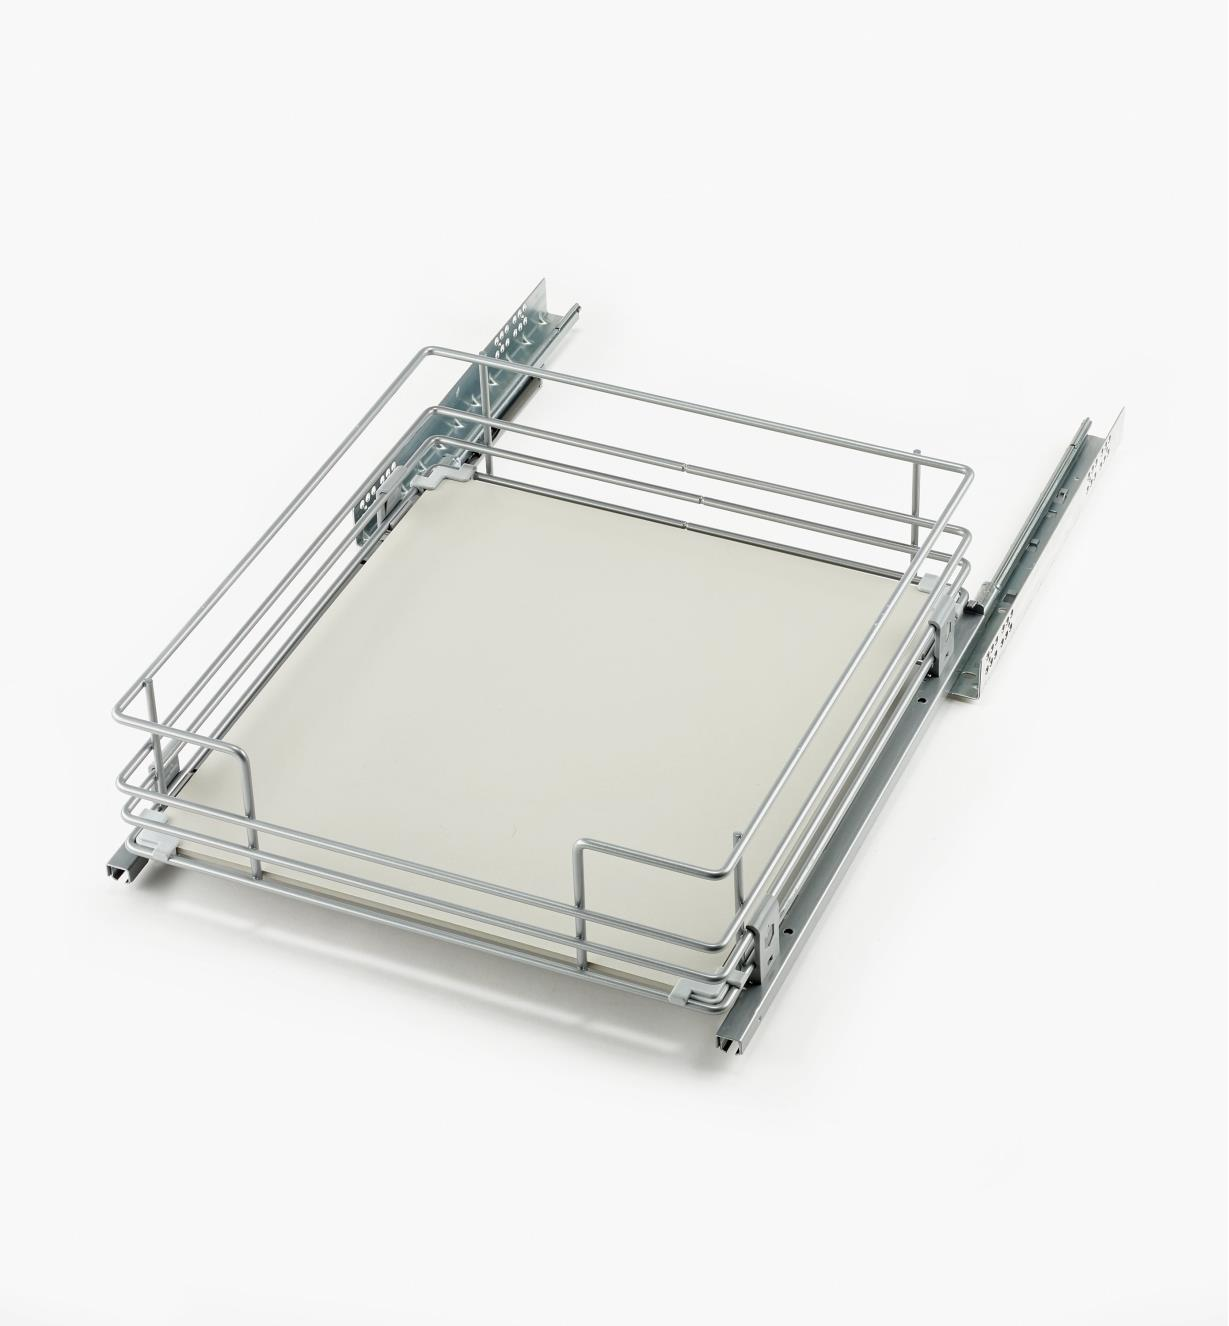 12K3081 - 410mm Solid-Bottom Pull-Out Drawer